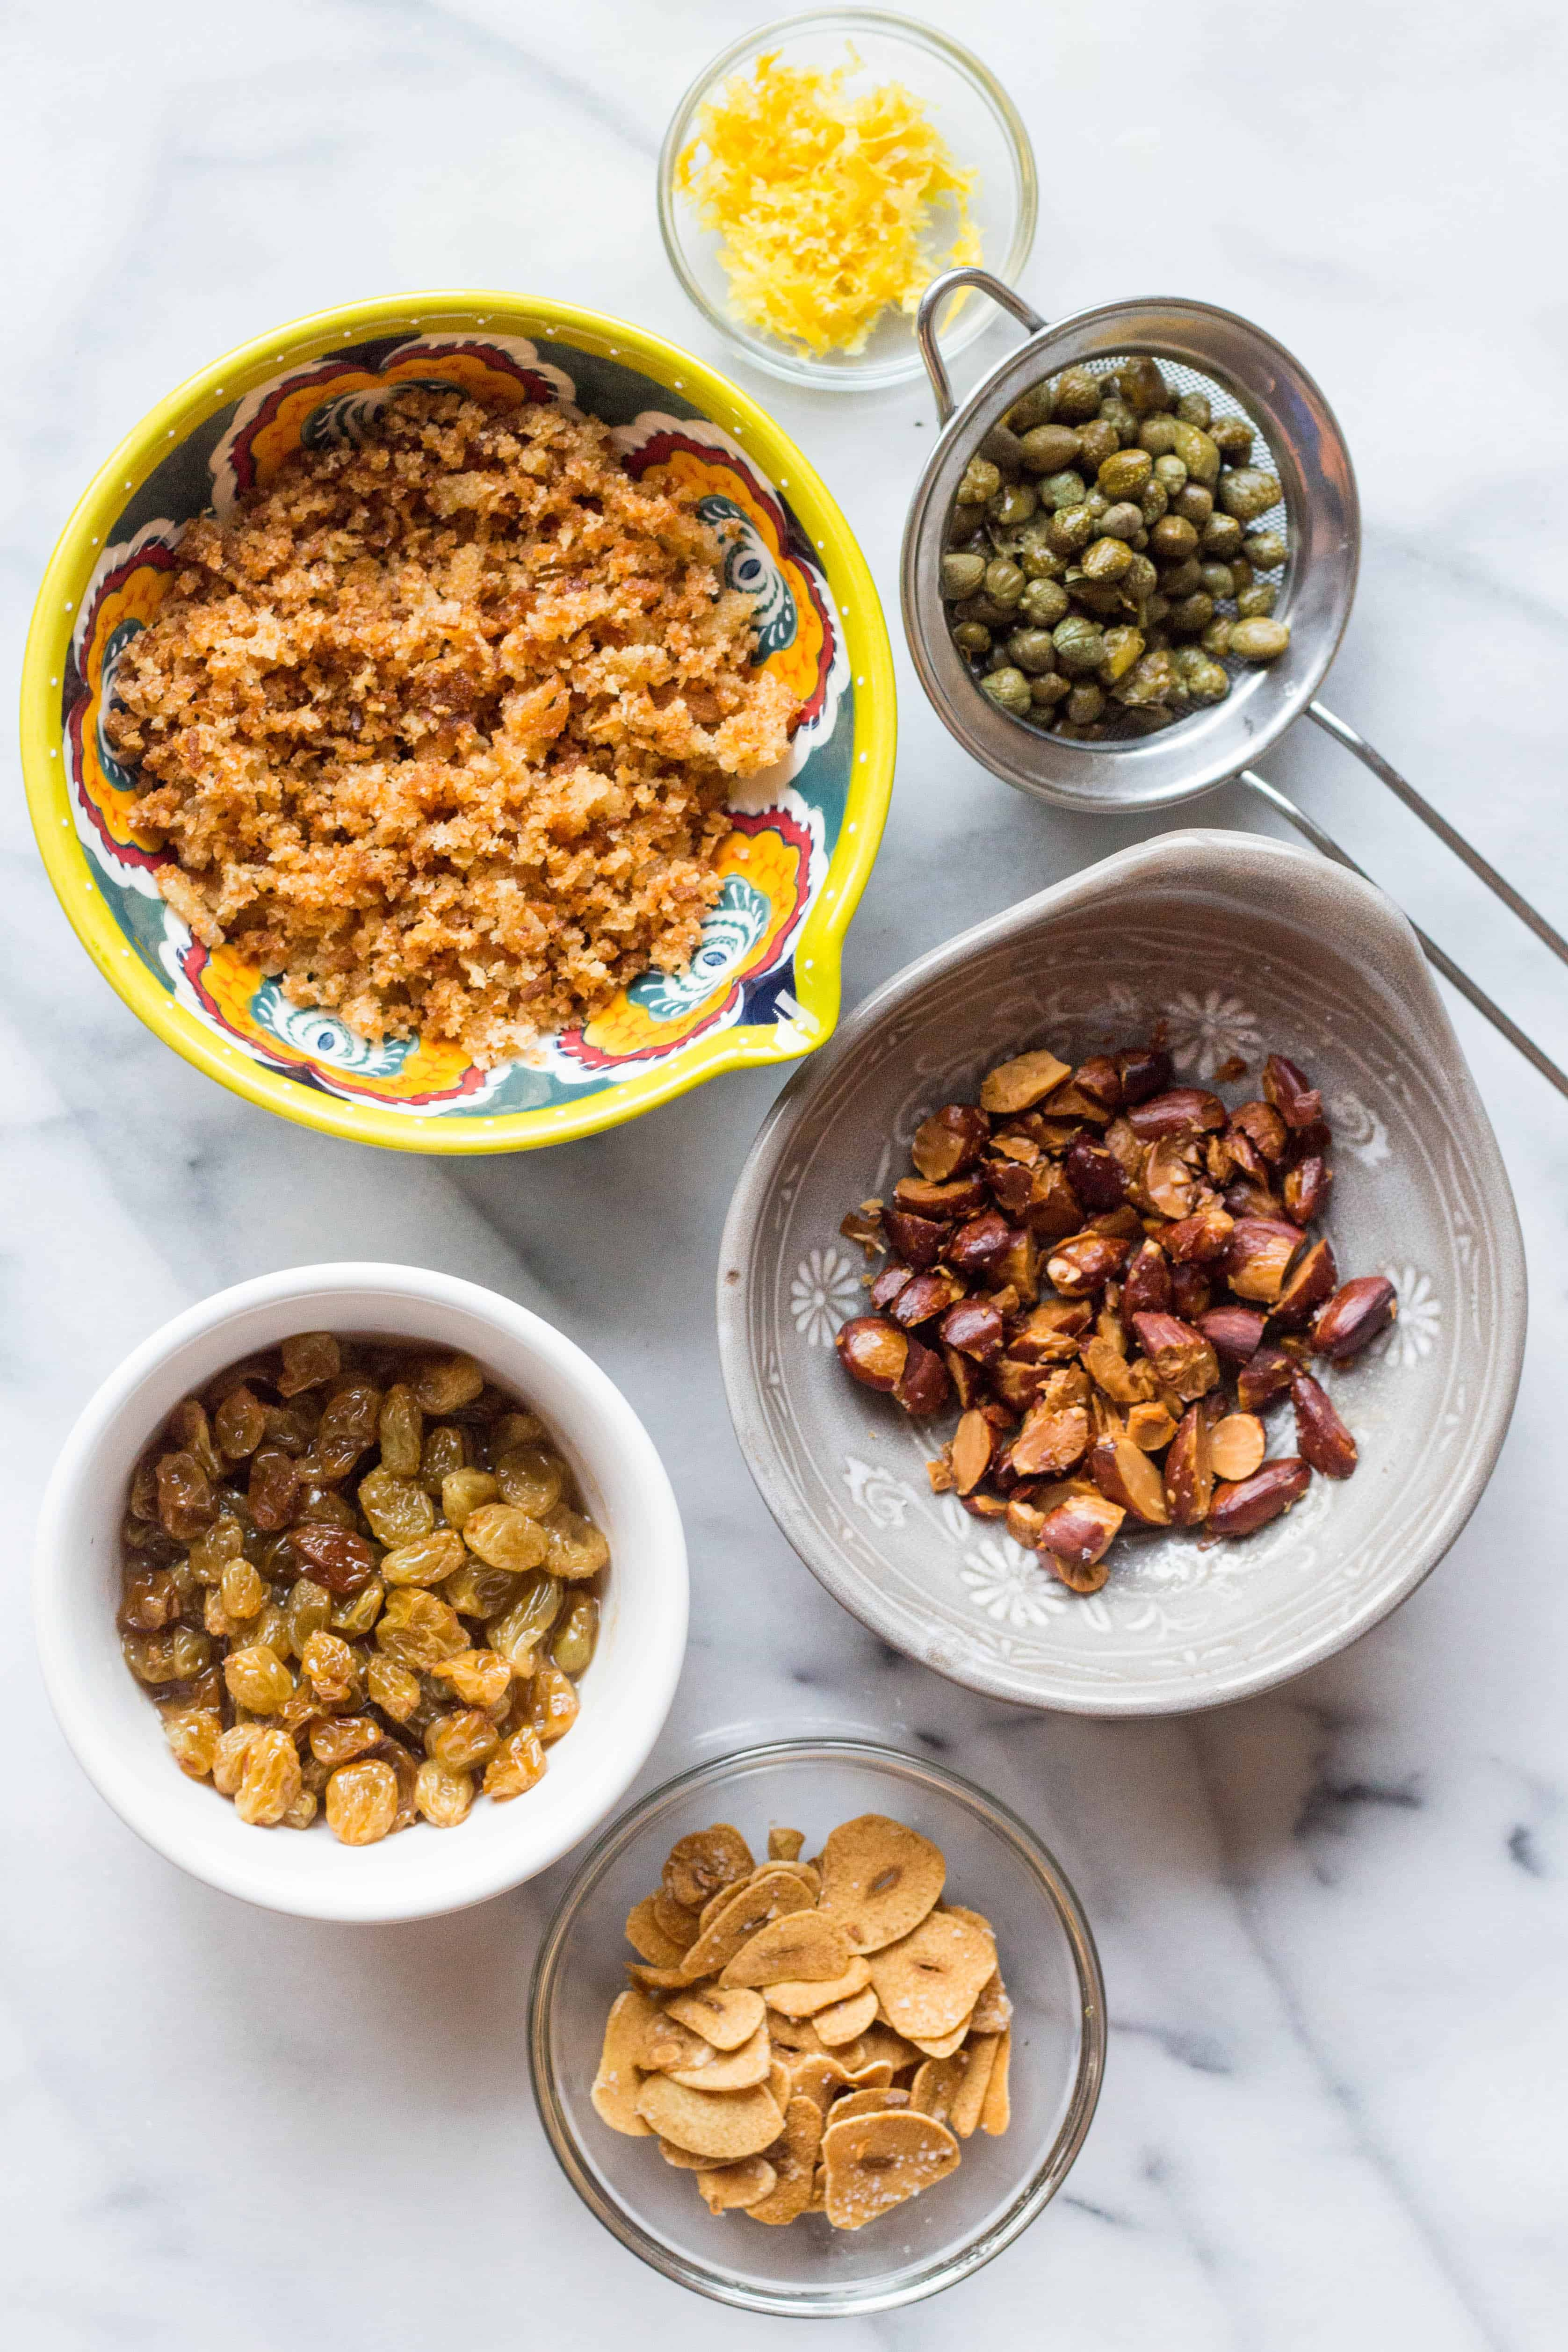 Several bowls on a marble counter filled with golden raisins, capers, toasted almonds, and capers.